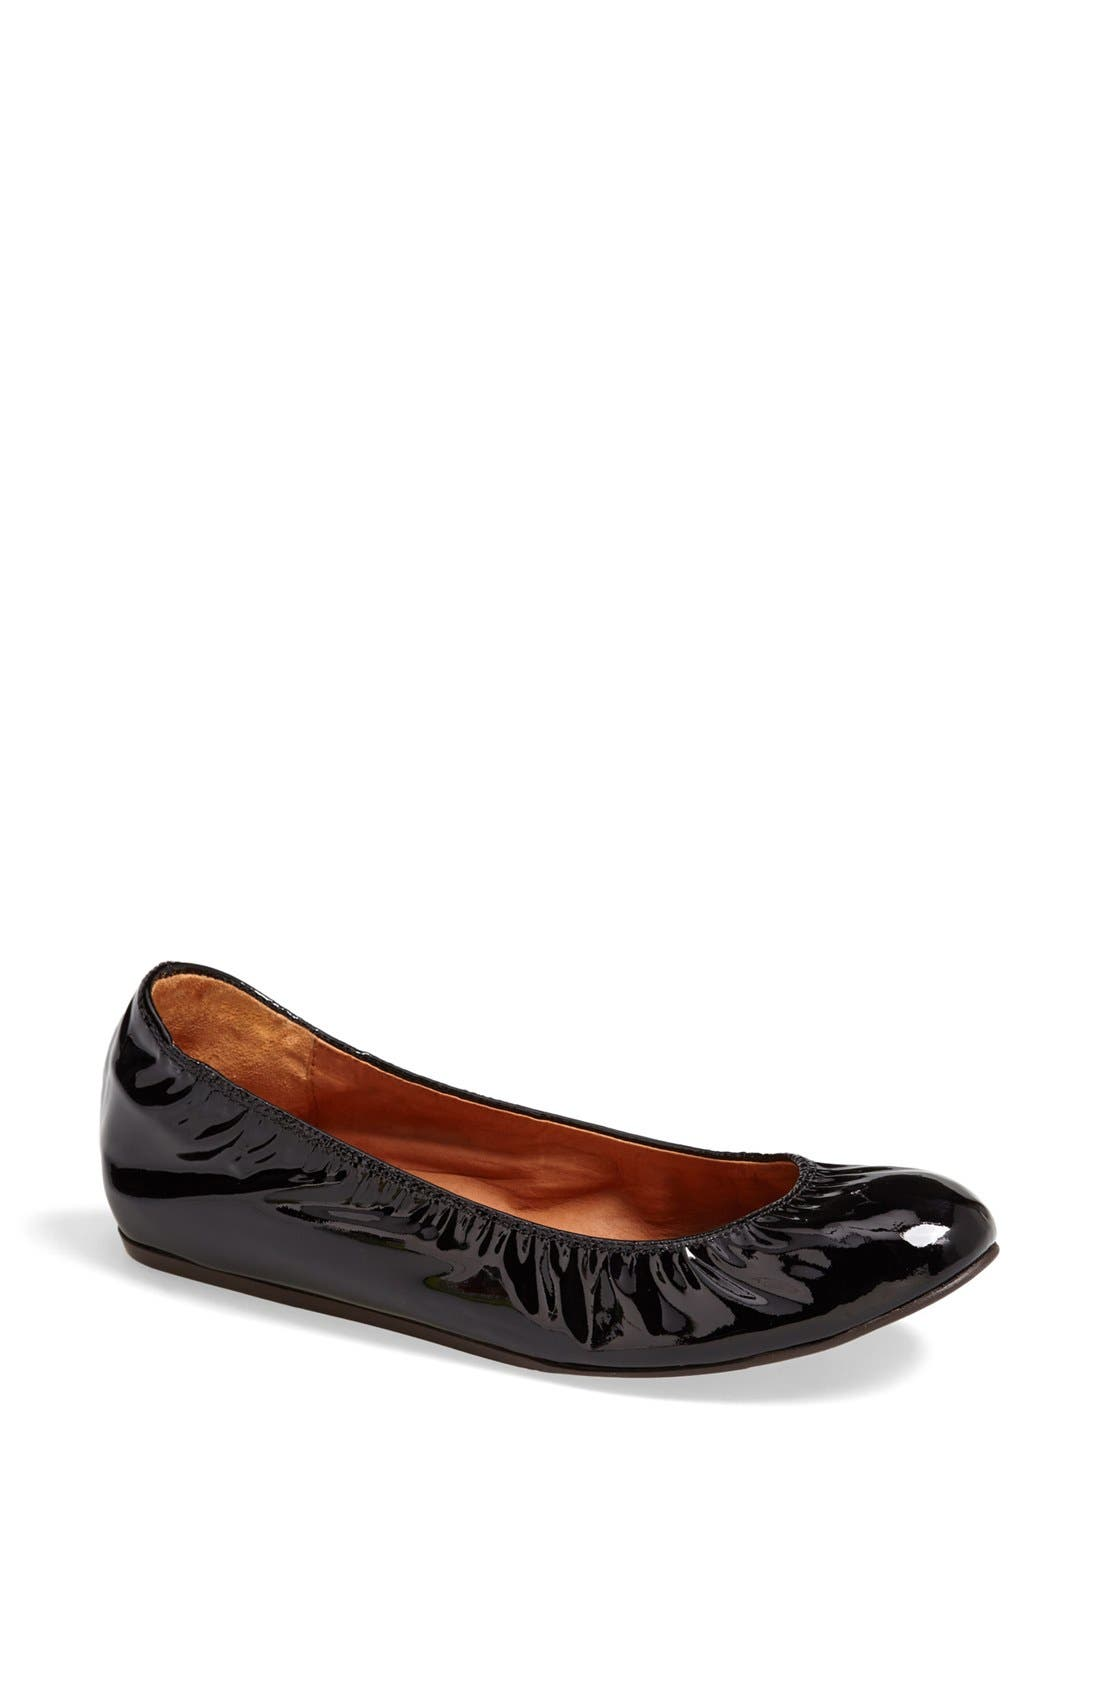 Main Image - Lanvin Patent Leather Ballerina Flat